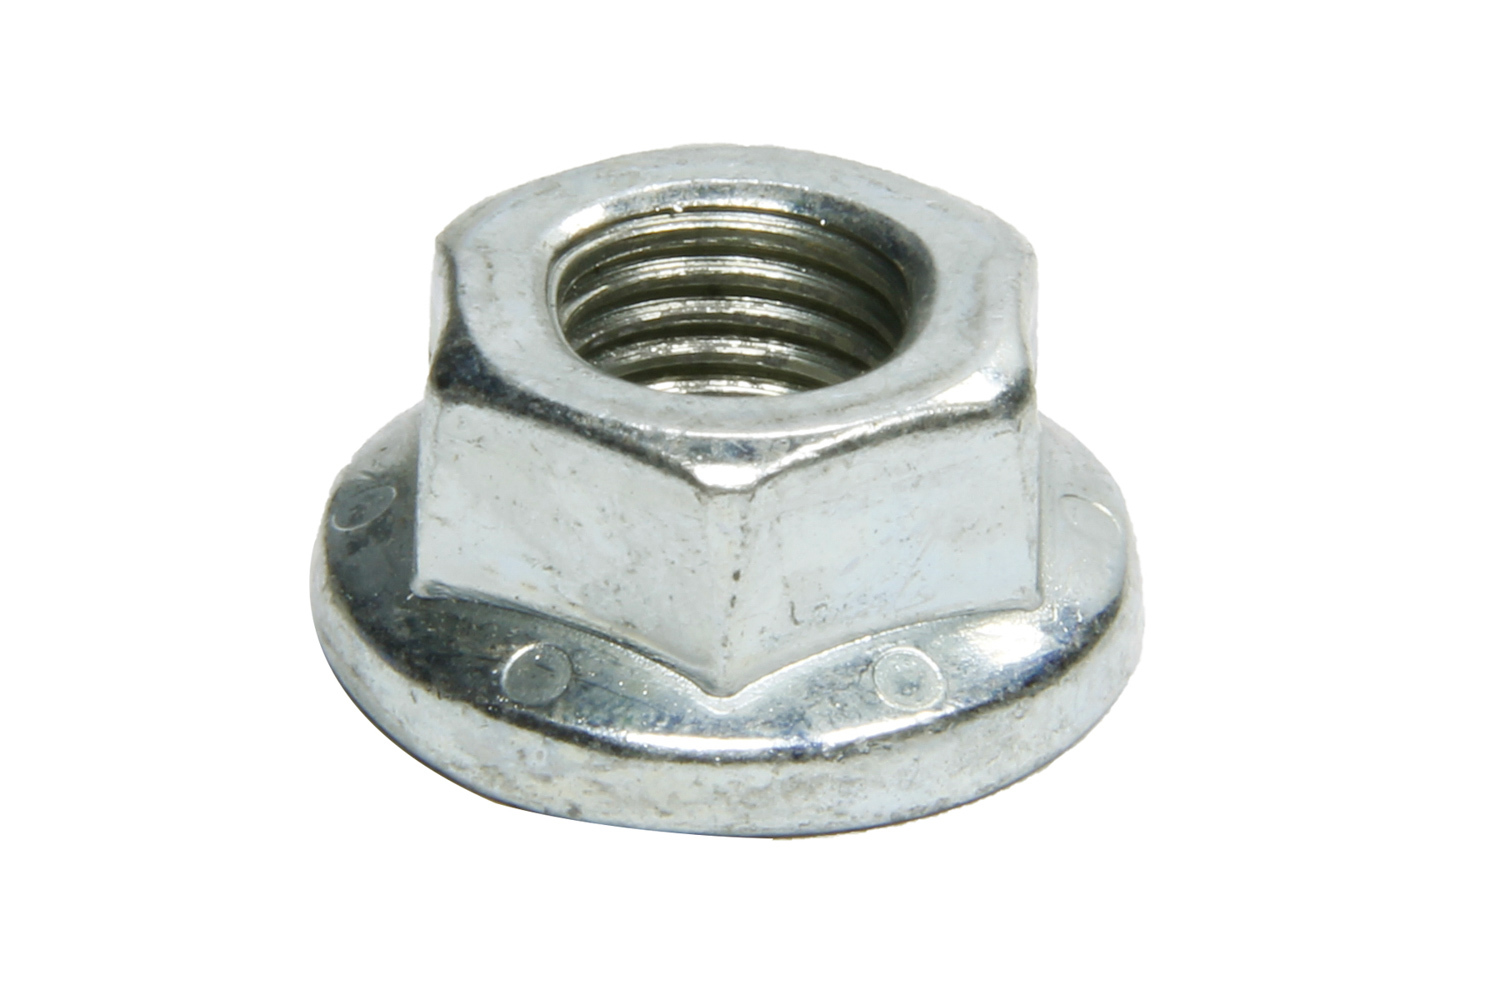 Winters 7/16-20 Flanged Lck Nut